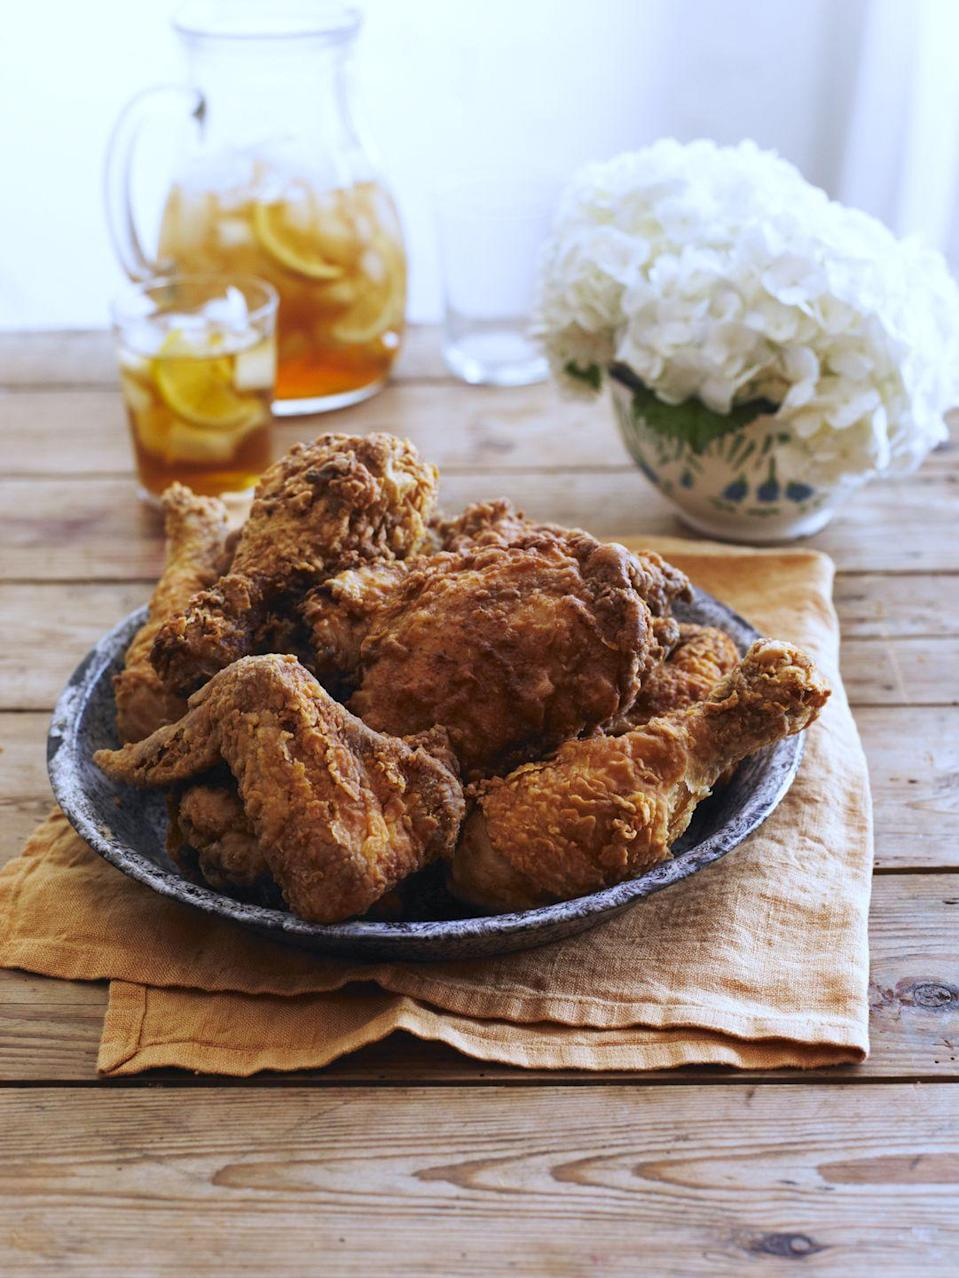 "<p>All good Southern cooks know that a buttermilk marinade, followed by a quick toss in seasoned flour, makes for crisp and tender fried chicken.</p><p><strong><a href=""https://www.countryliving.com/food-drinks/recipes/a1450/spicy-southern-fried-chicken-3566/"" rel=""nofollow noopener"" target=""_blank"" data-ylk=""slk:Get the recipe."" class=""link rapid-noclick-resp"">Get the recipe.</a></strong></p>"